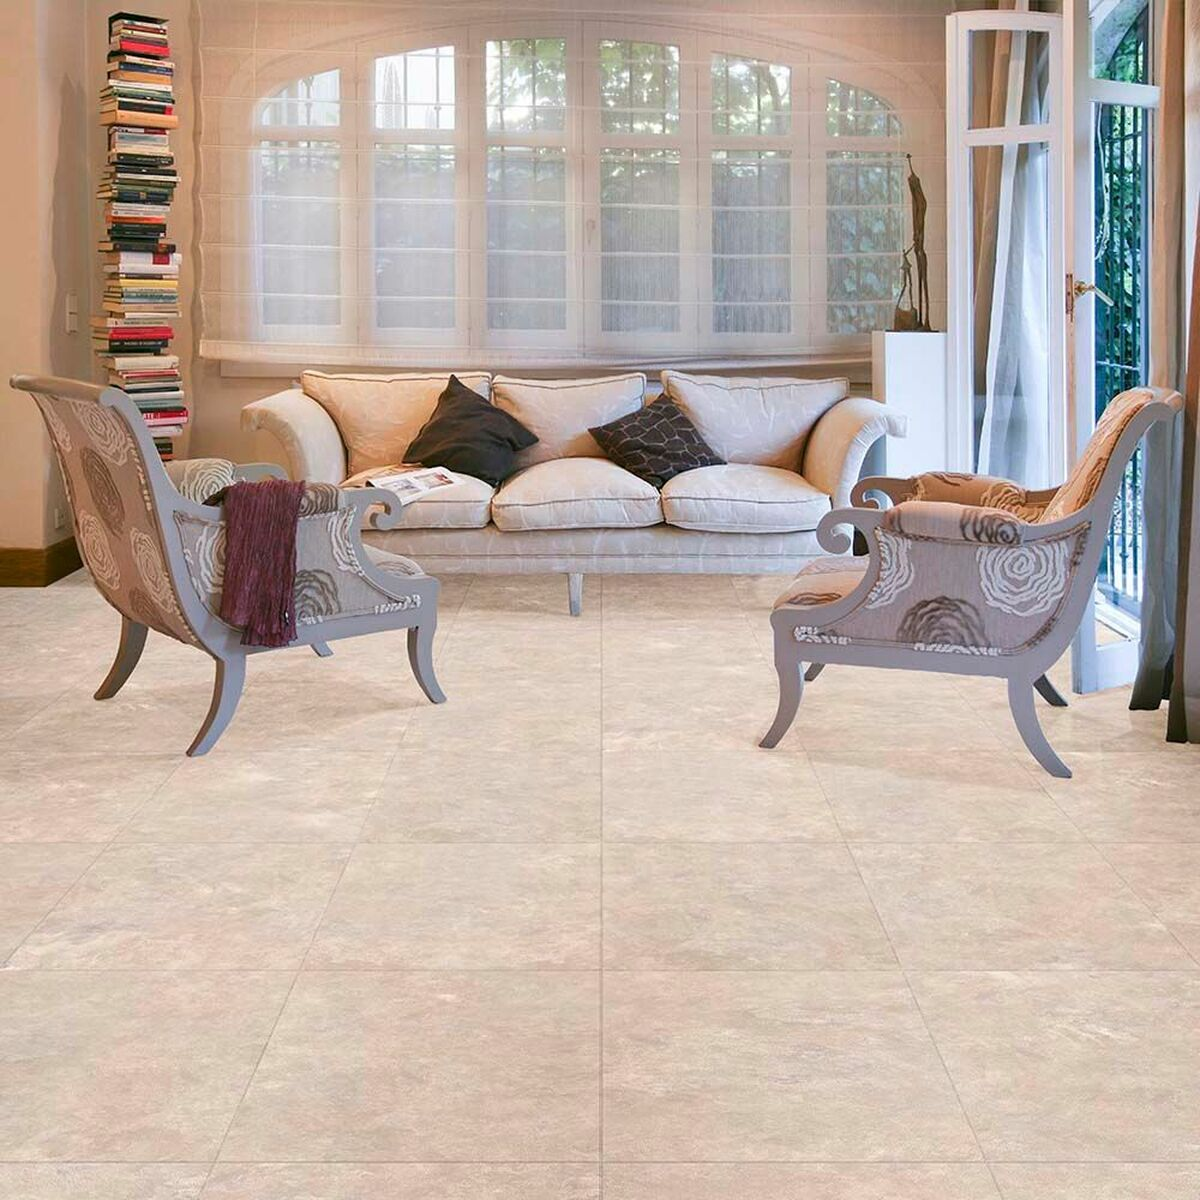 Perfection floor tile natural stone tile fieldstone 20 x 20 x perfection floor tile fieldstone in a living room setting dailygadgetfo Images